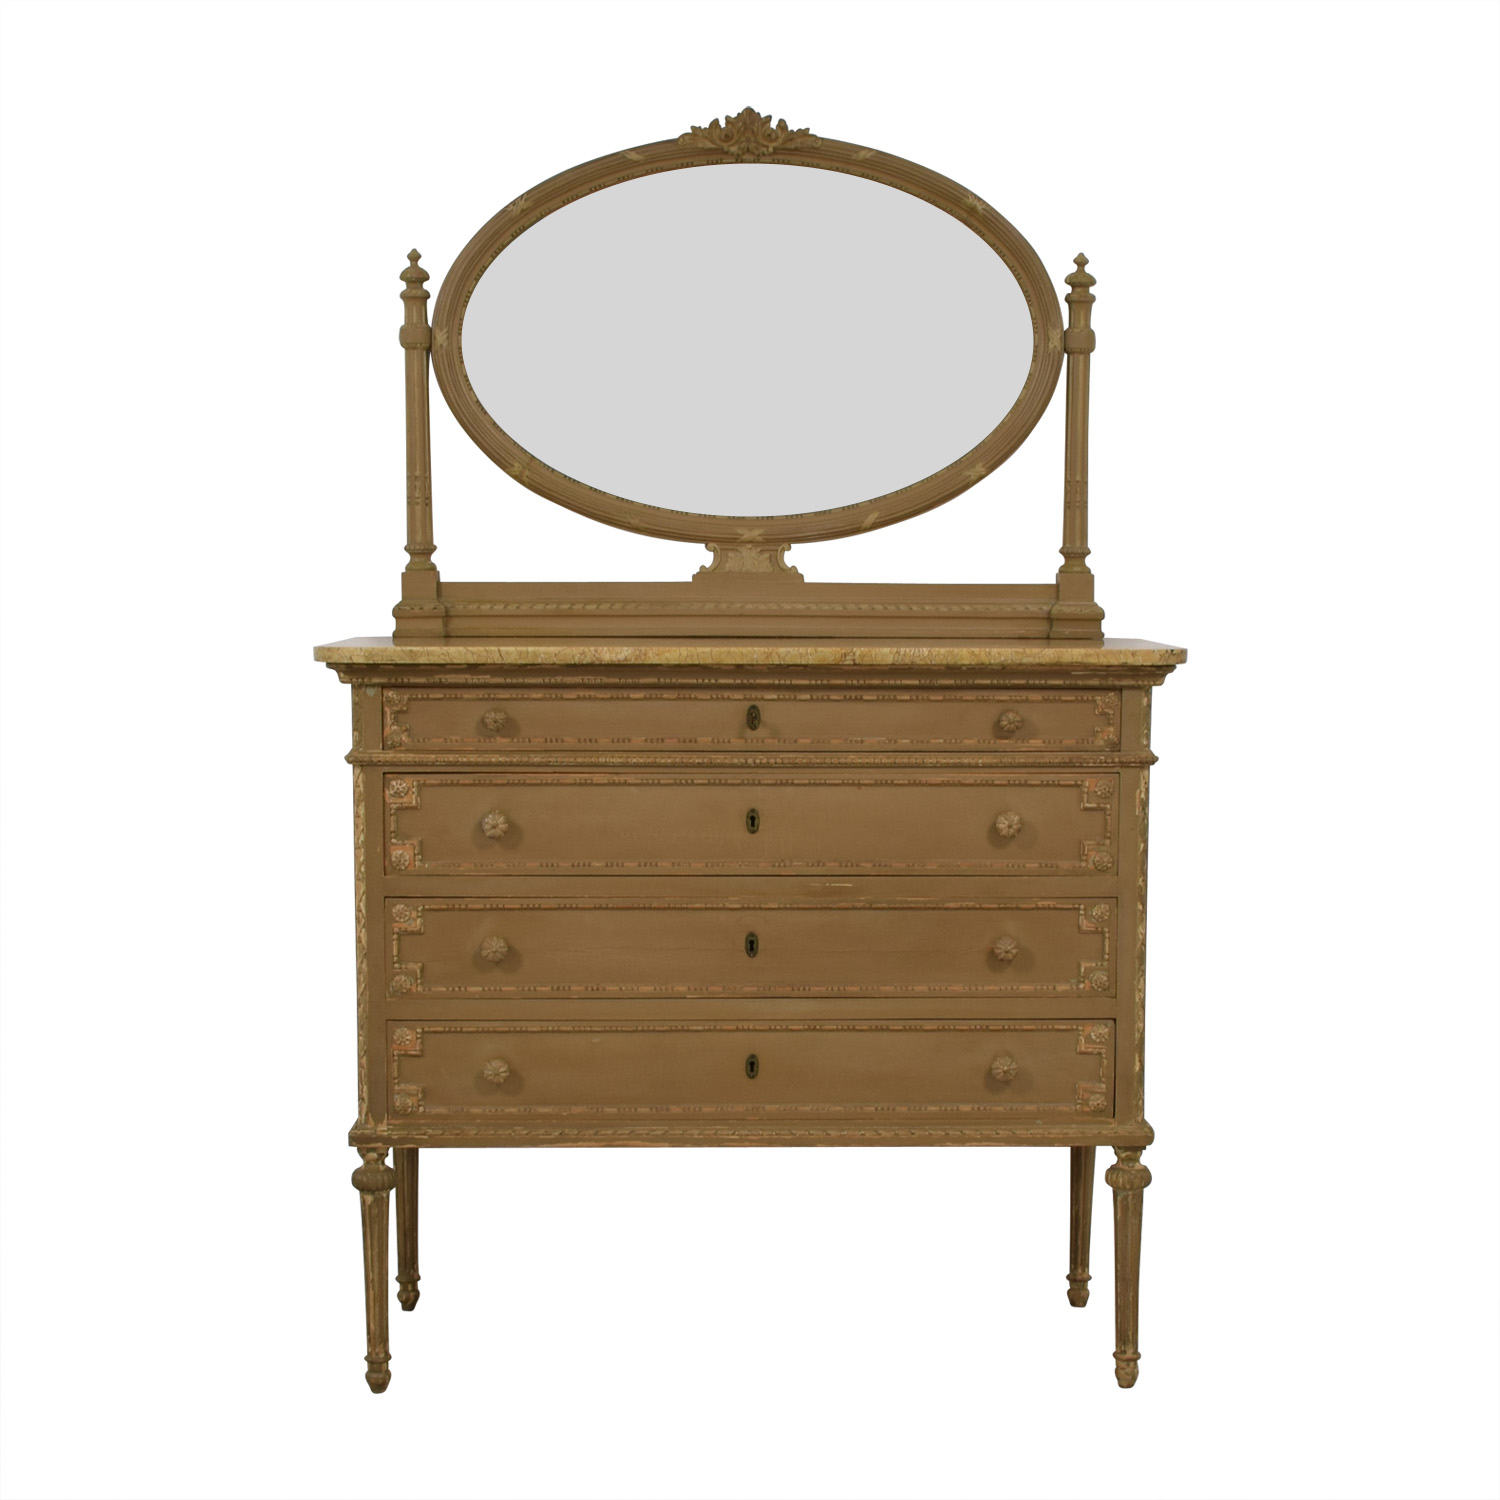 ABC Carpet & Home ABC Carpet & Home Antique Four-Drawer Dresser with Mirror dimensions